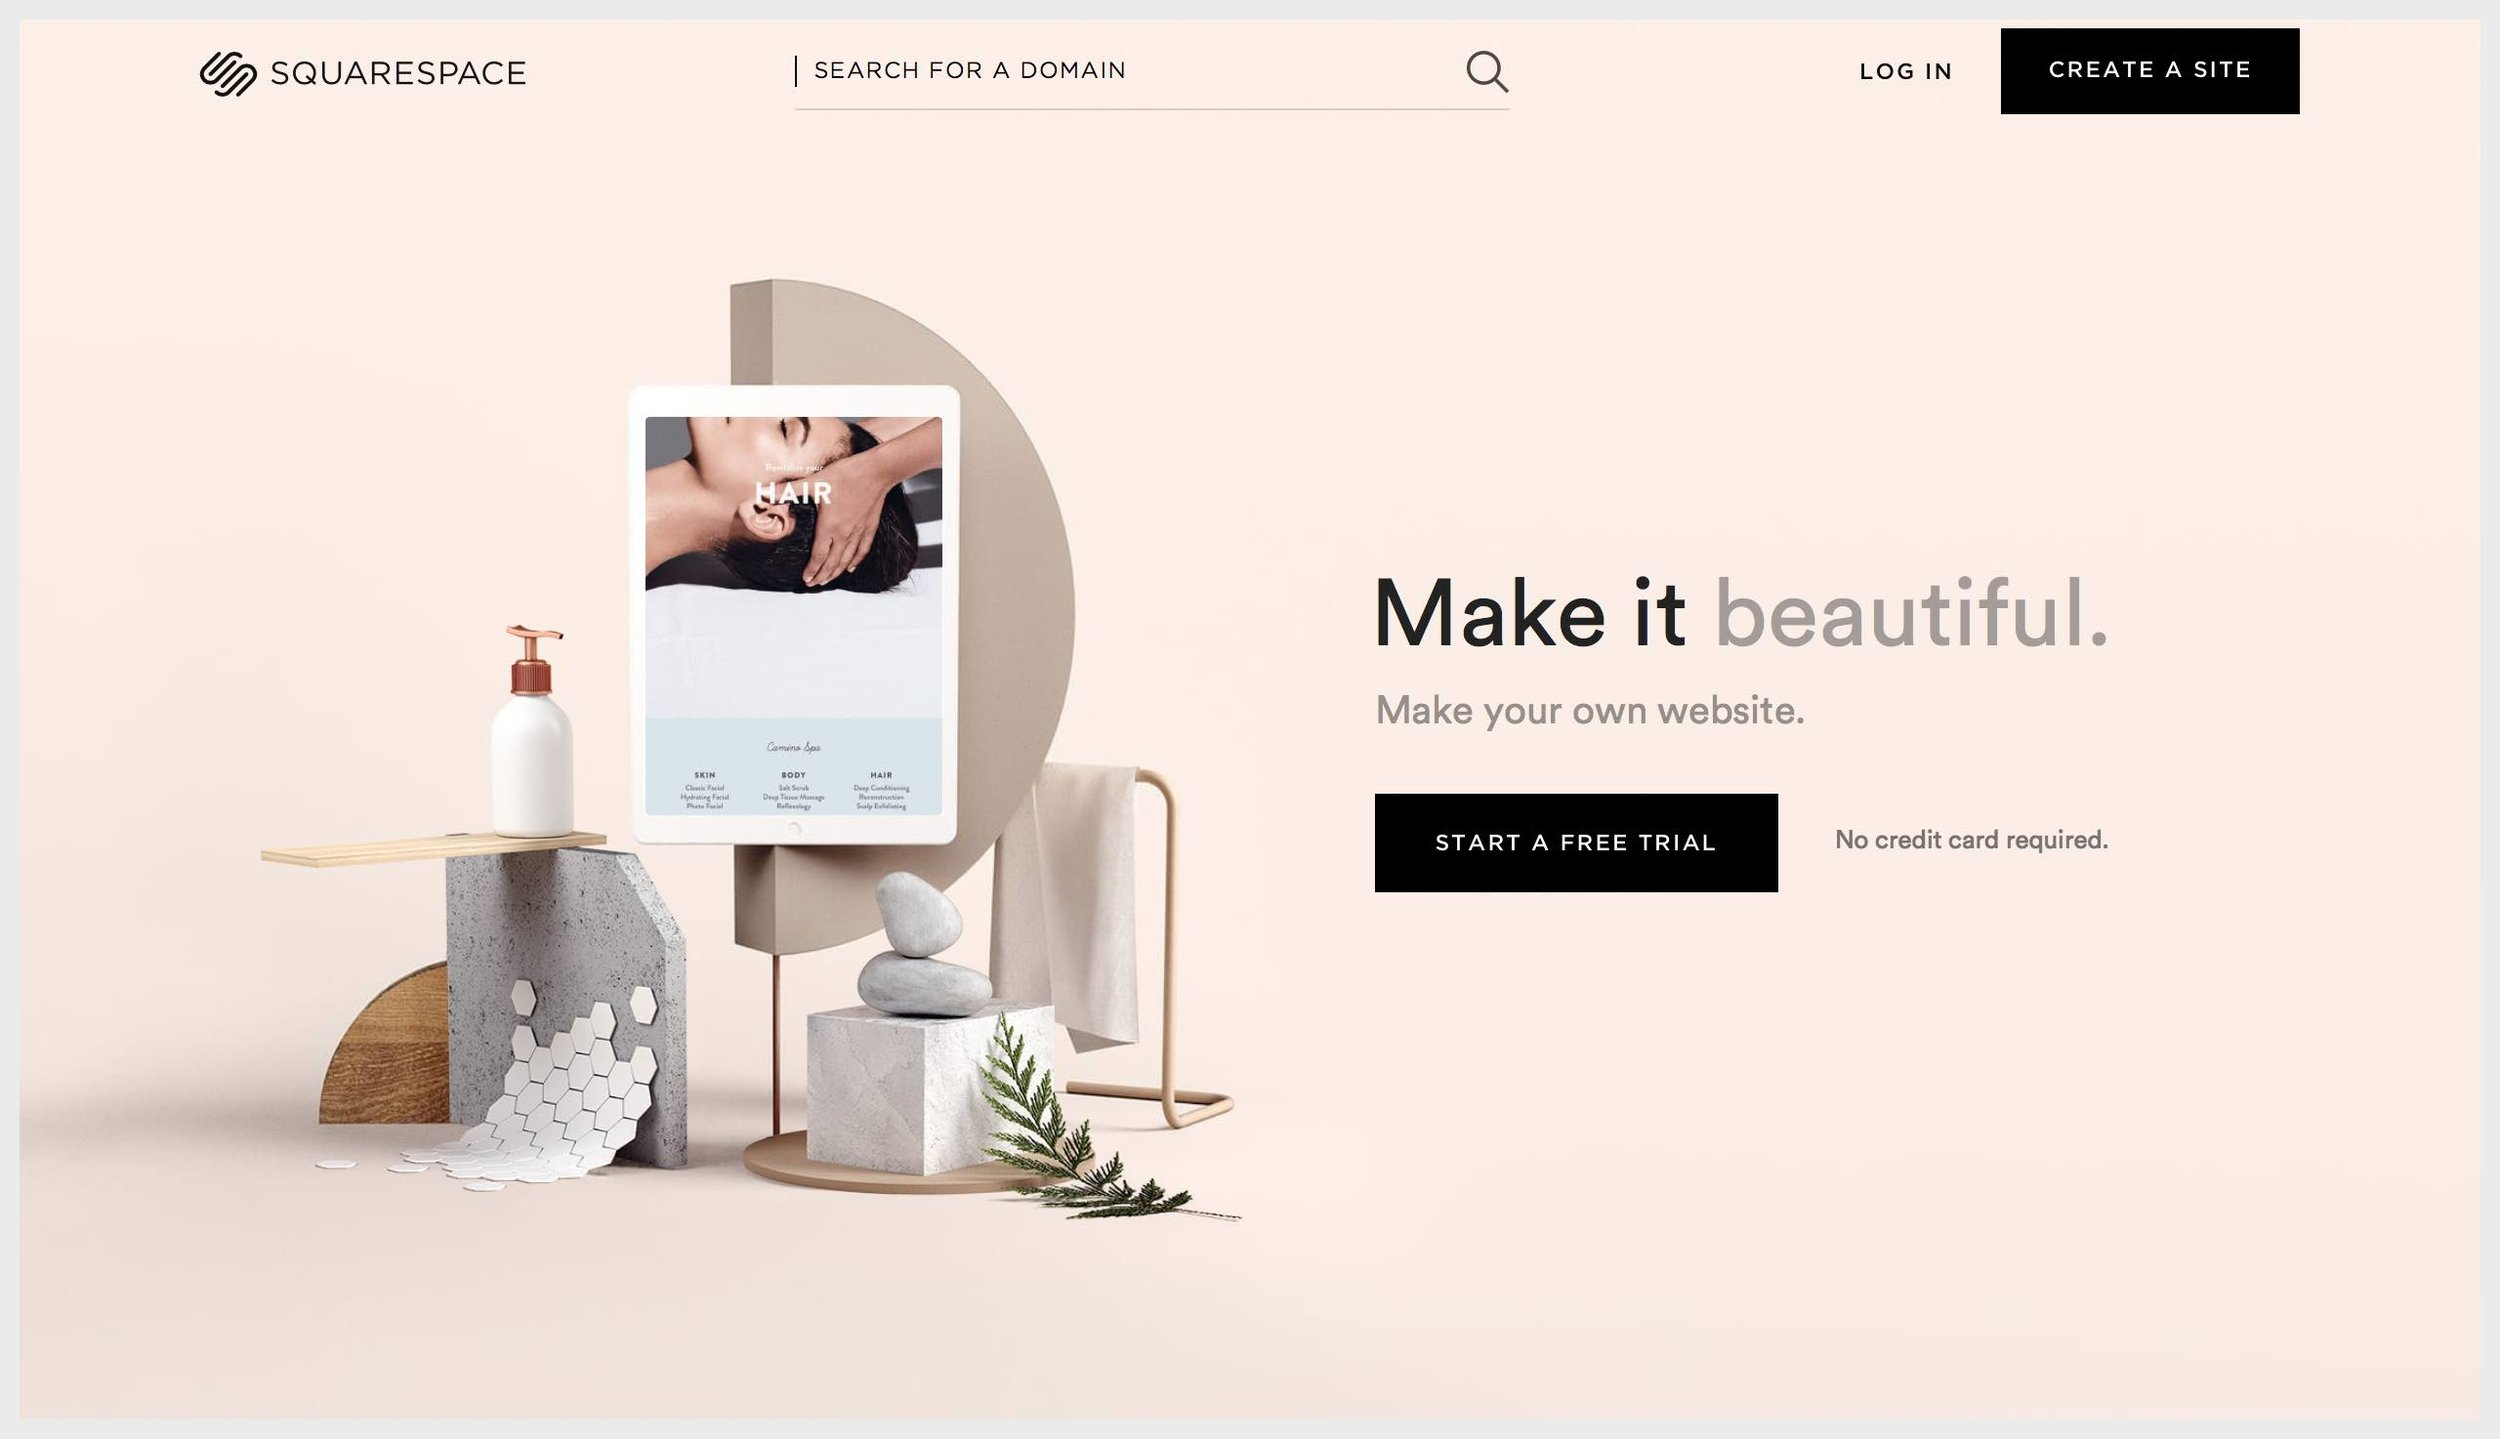 Squarespace's homepage with try CTAs